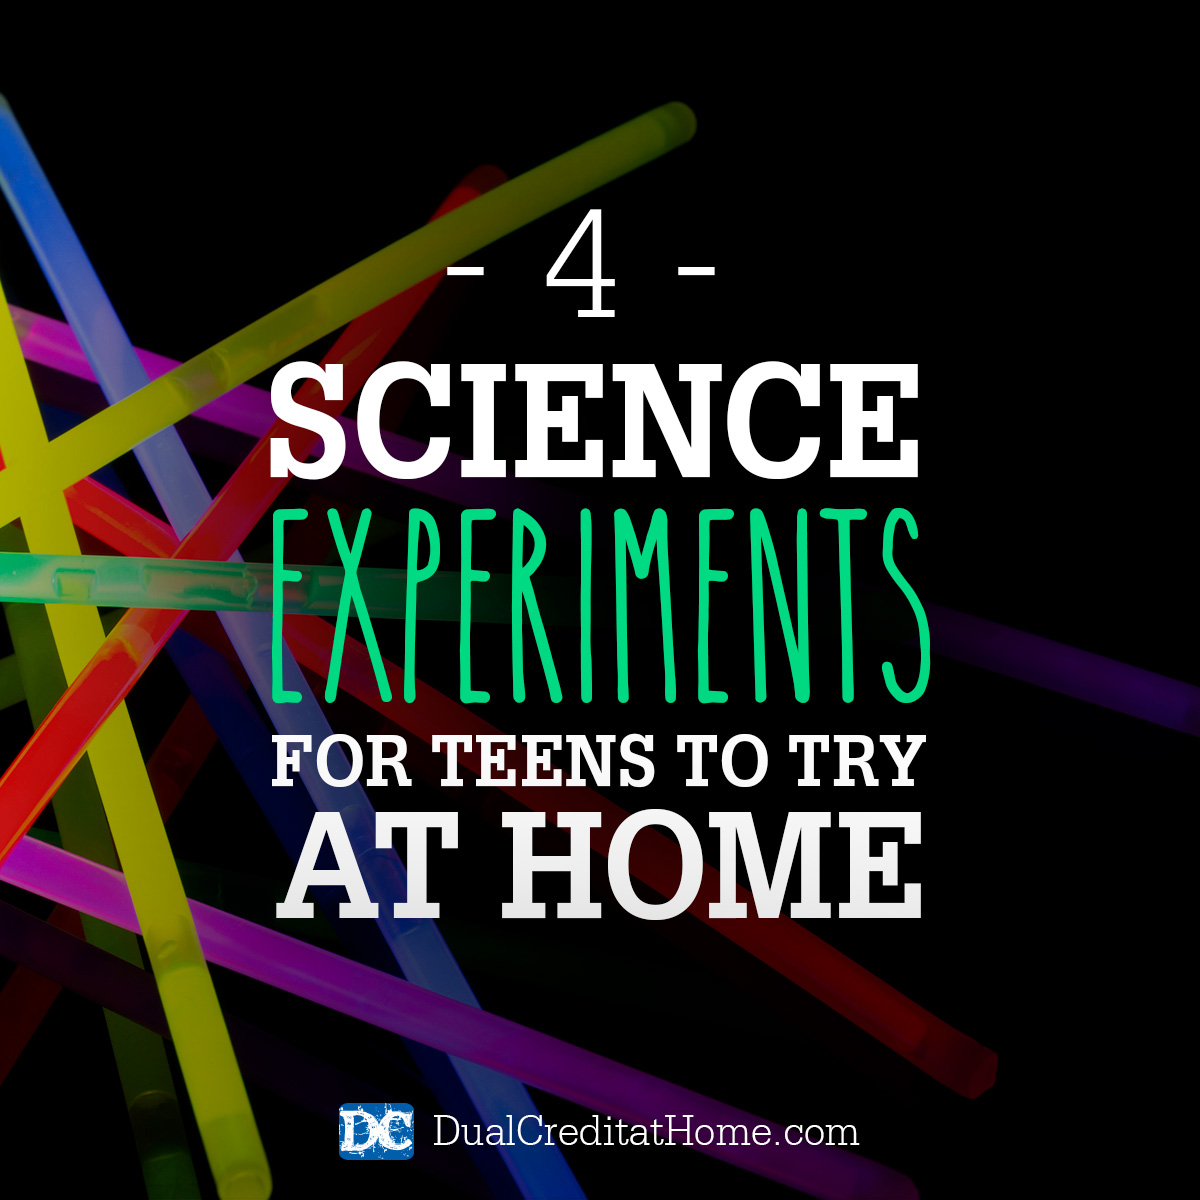 Four Science Experiments for Teens to Try at Home